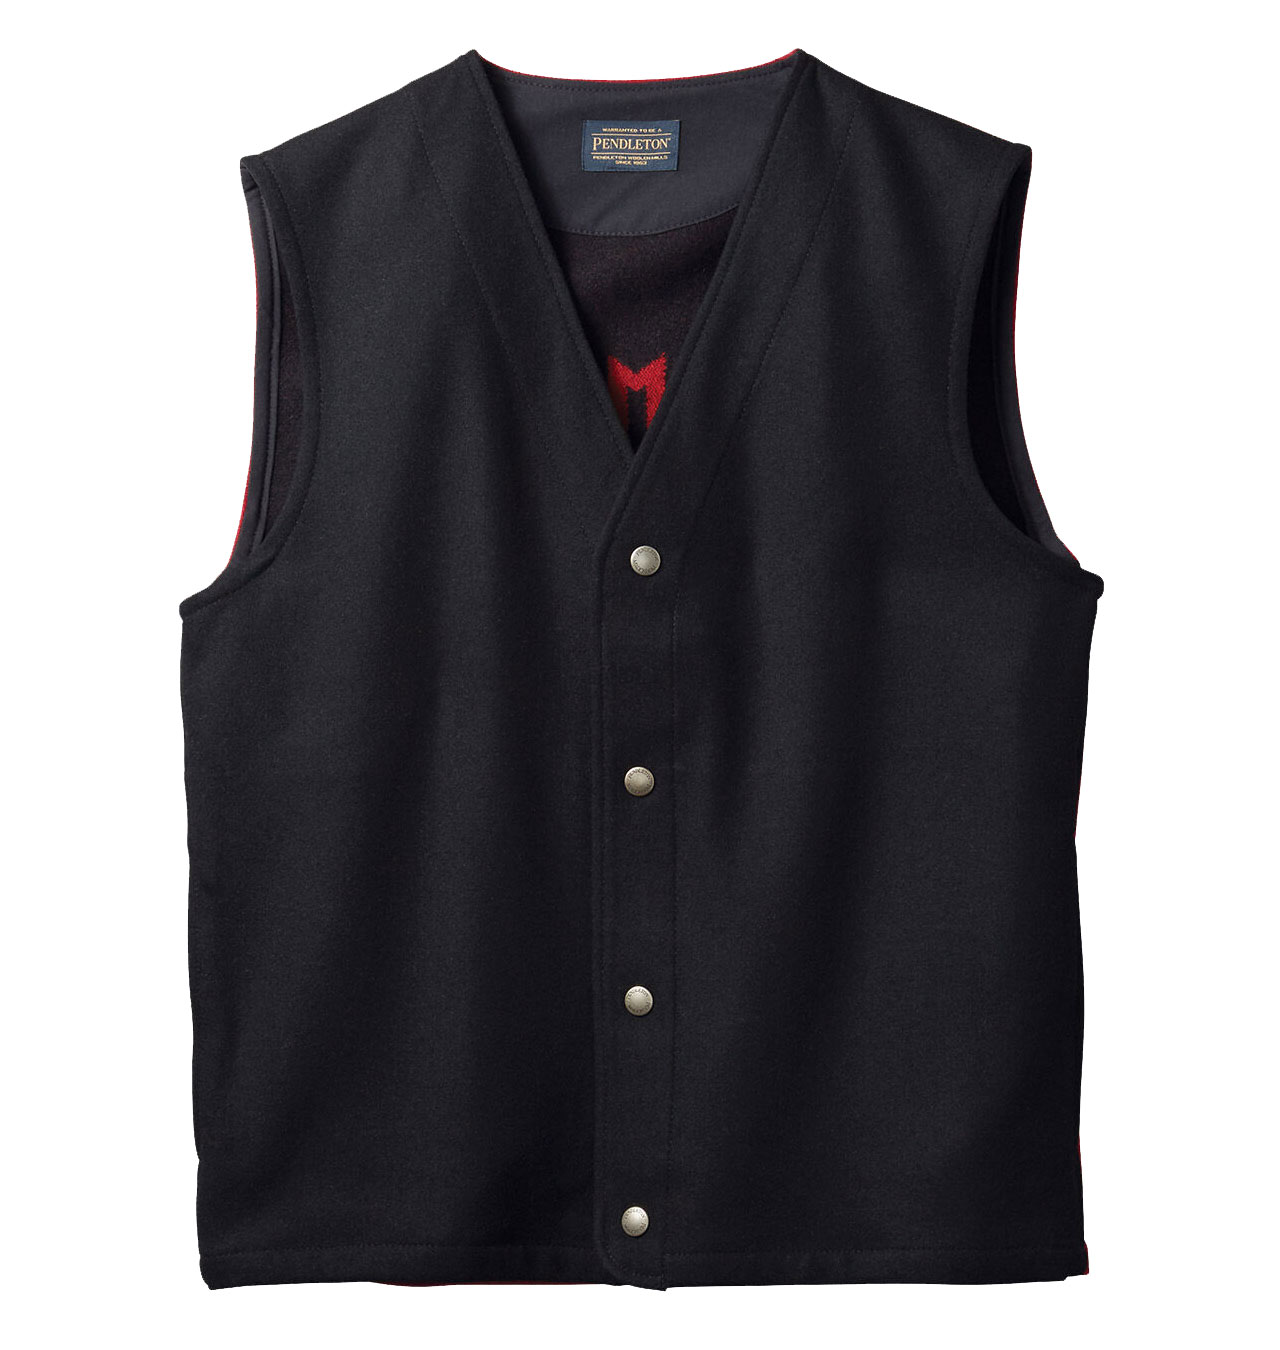 Pendleton---Chief-Star-Vest---Black-Red-21